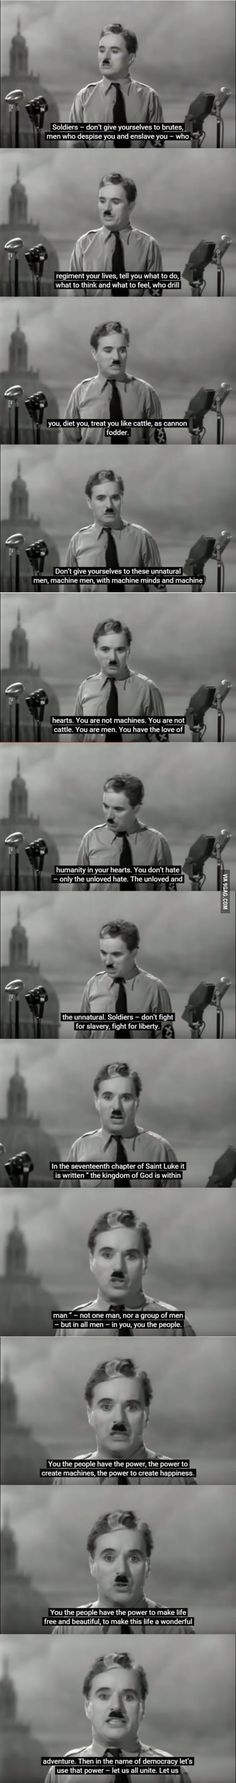 .. .. 'Greatest Speech Ever' .. .. [.&... before You get All UPSET  .. WATCH the Movie: 'The Great Dictator' [Charlie Chaplin] .&. its the 'first time' He SPOKE in a Movie .&. It was a 'Patriotic Declaration AGAINST Nazism .&. the Encouragement of Our Troops who Fought in this War'.]